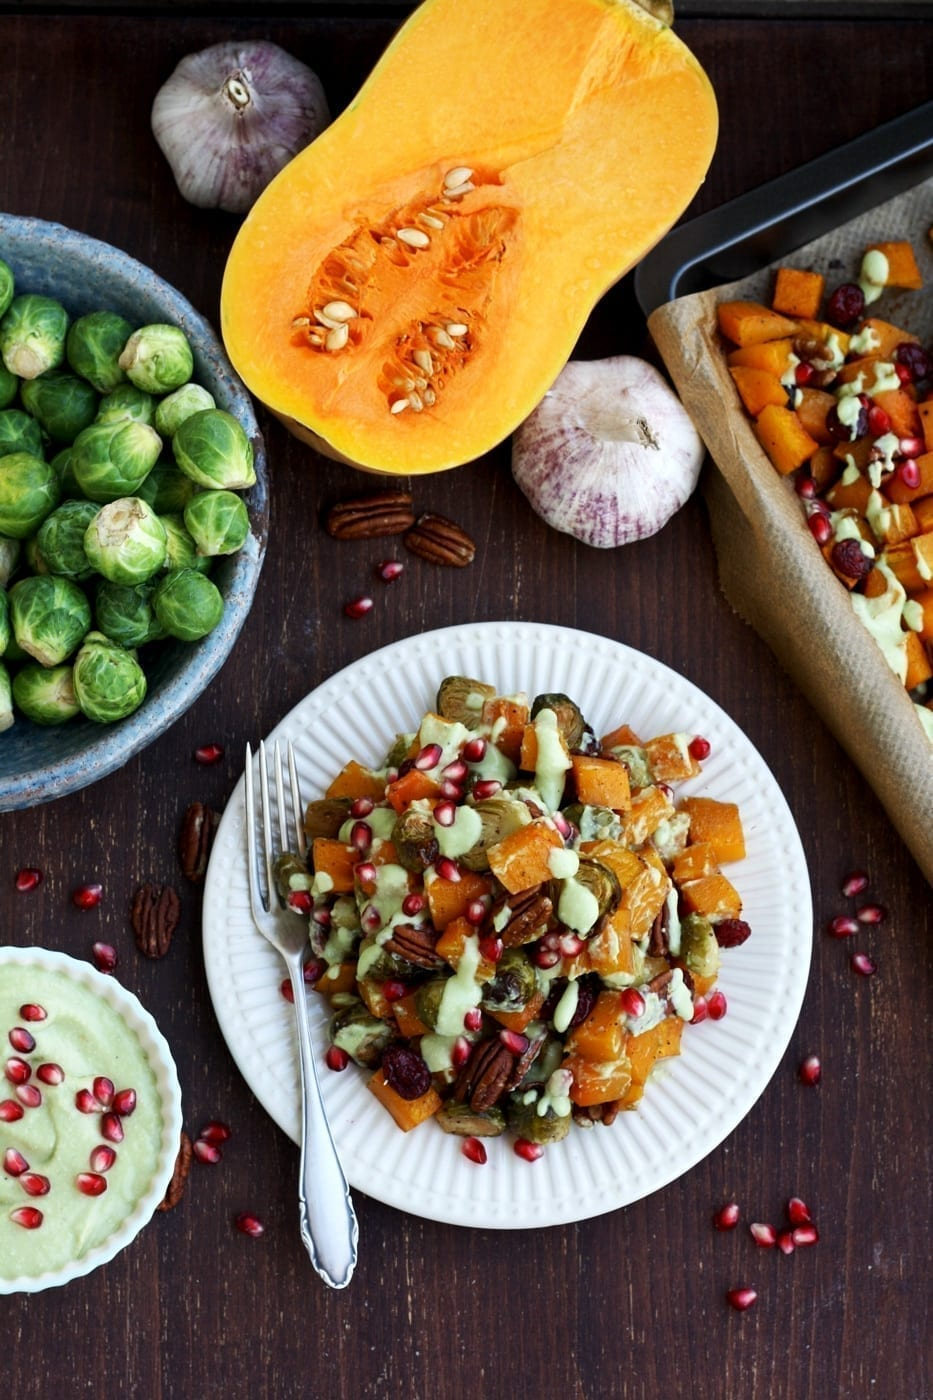 Vegan Christmas Dinner: Roasted Brussels Sprouts with Butternut Squash